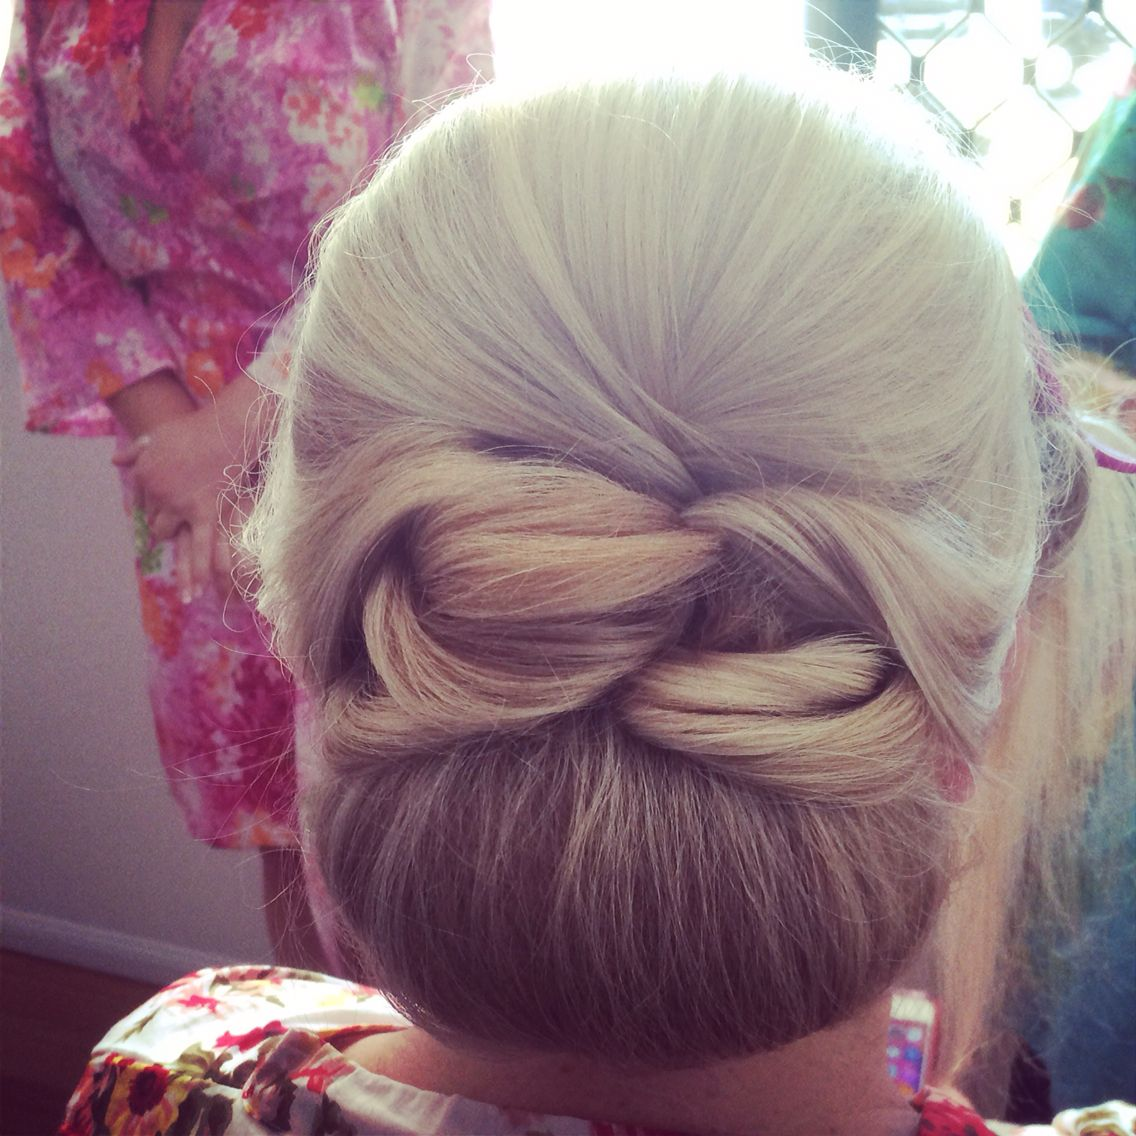 Bridal style, low chignon, detail, height. Hair & makeup